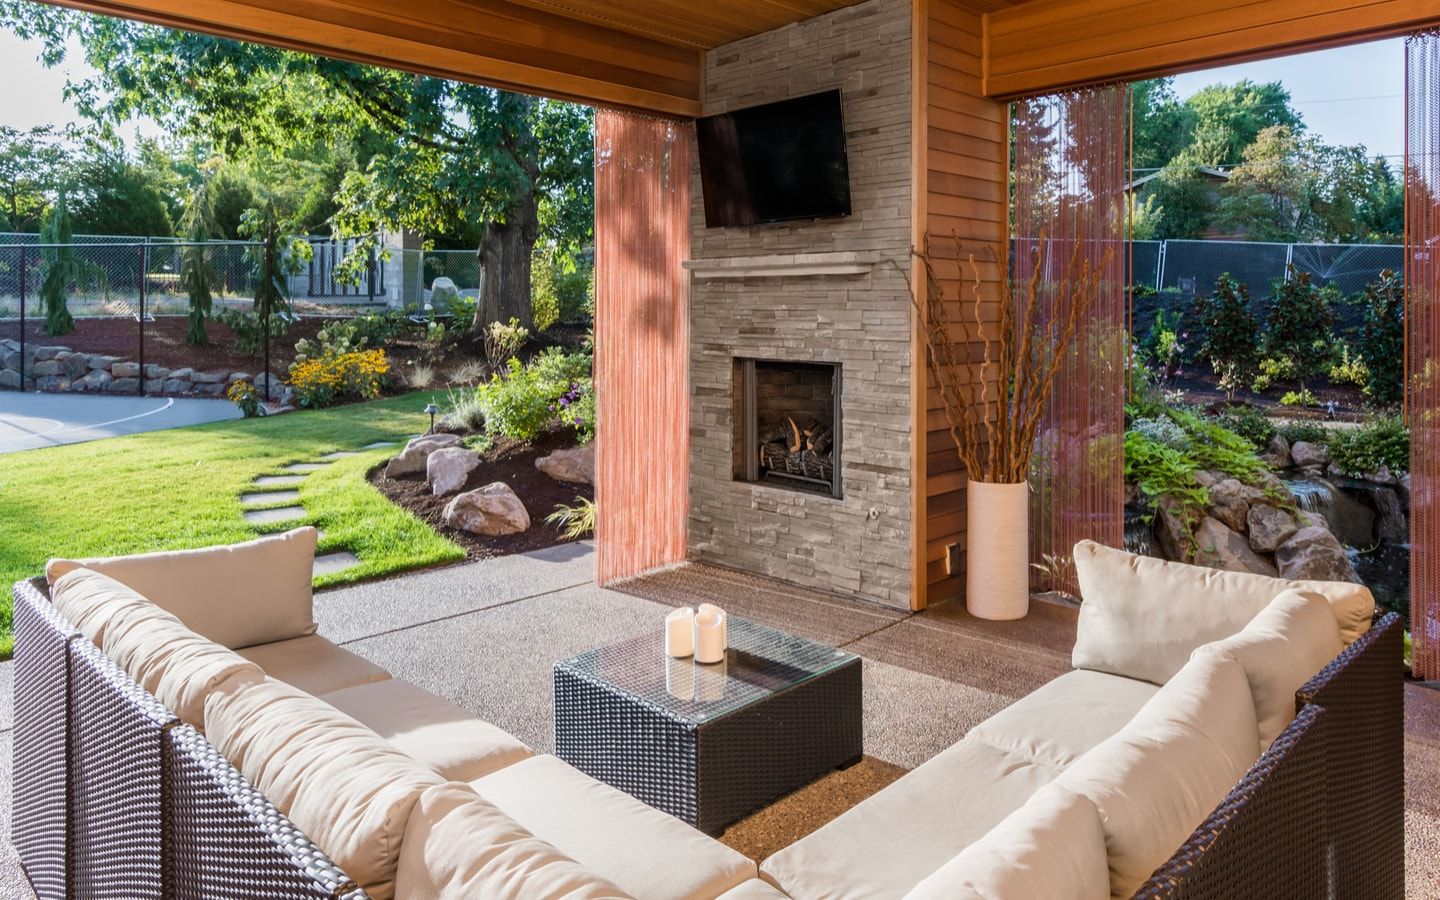 Create a resort in your backyard by upgrading the porch.